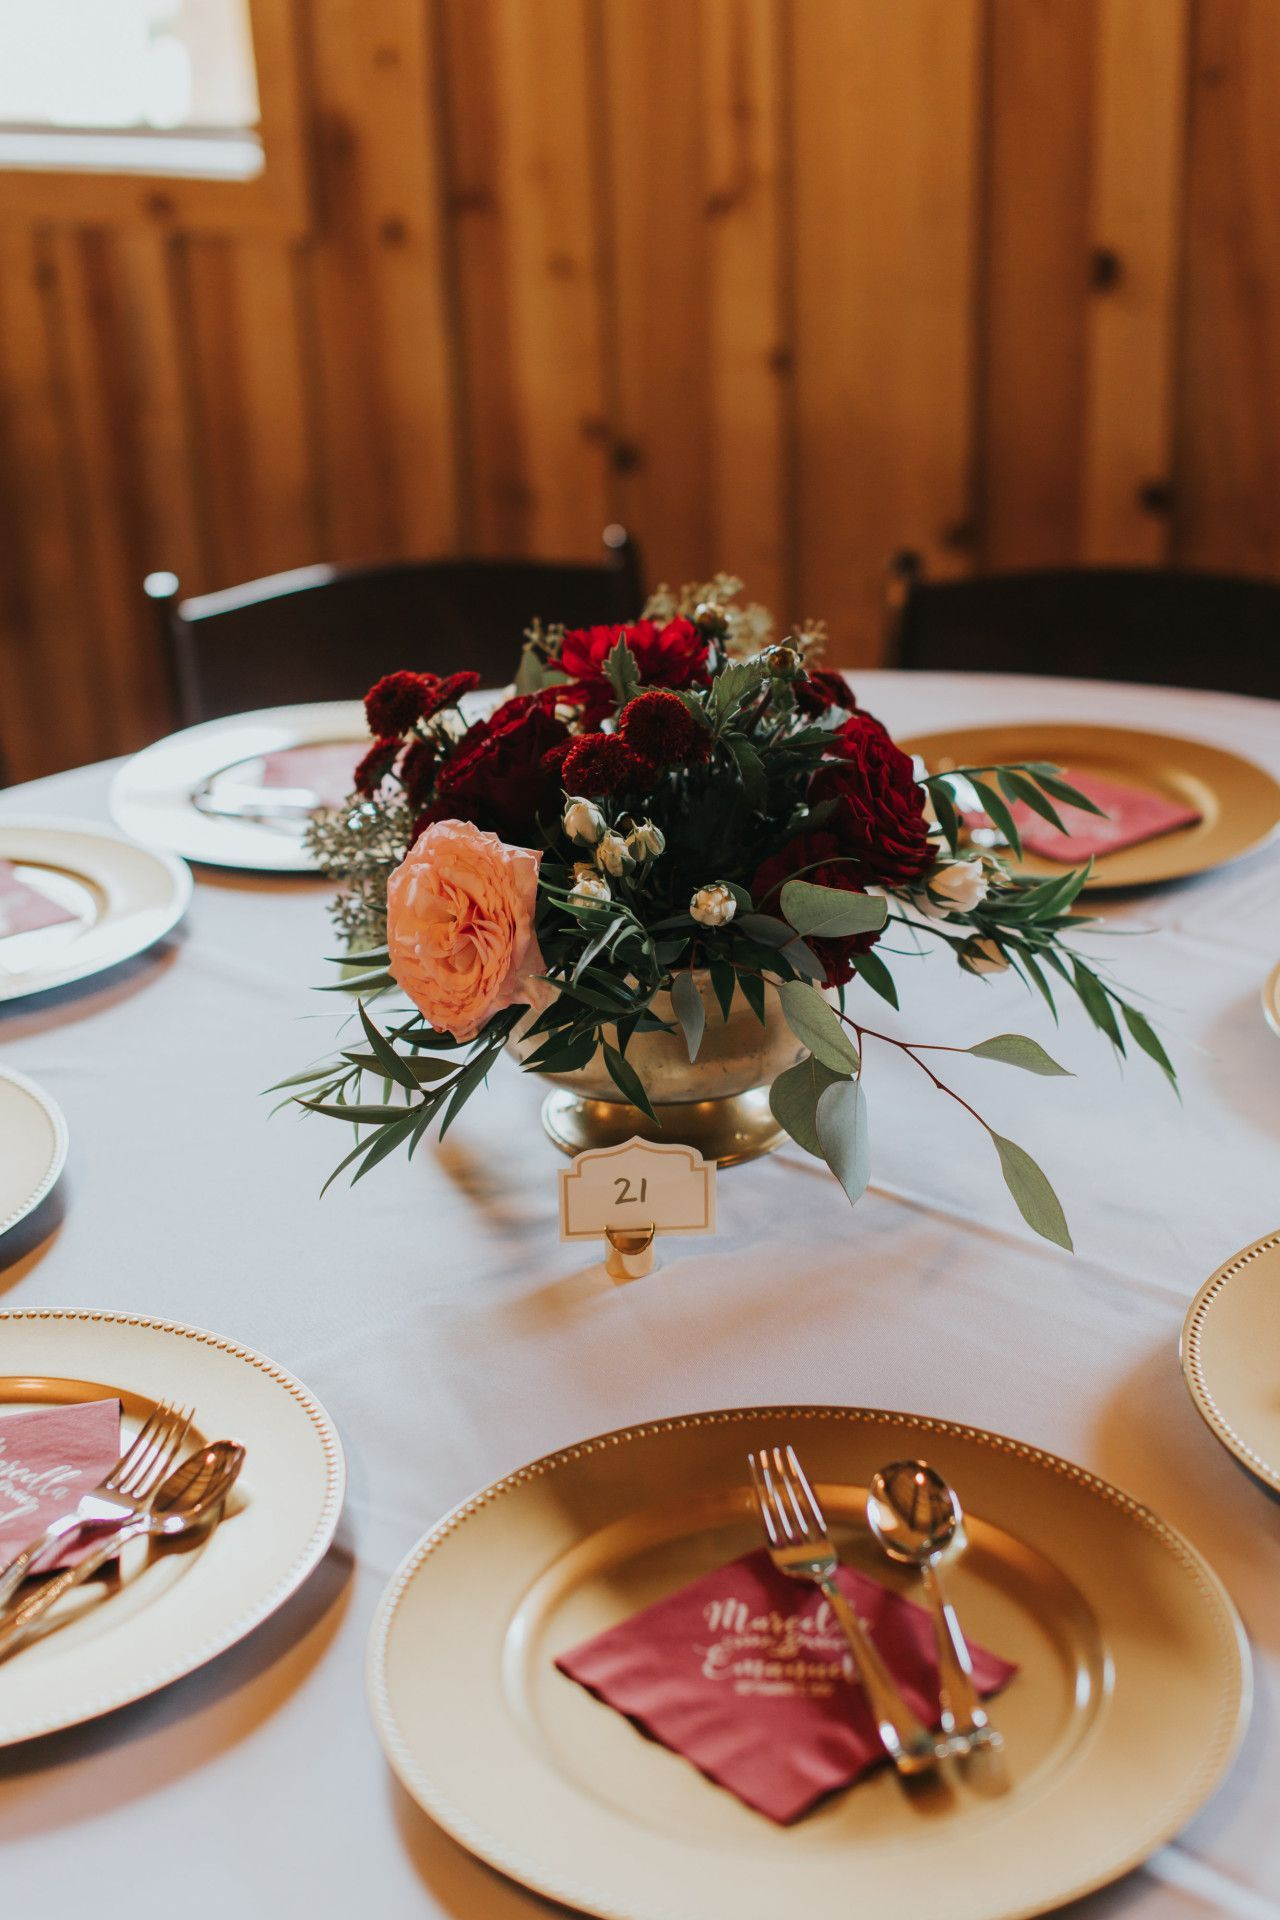 Wedding decor maroon and gold  deep red  blush pink wedding centerpieces  gold  maroon wedding